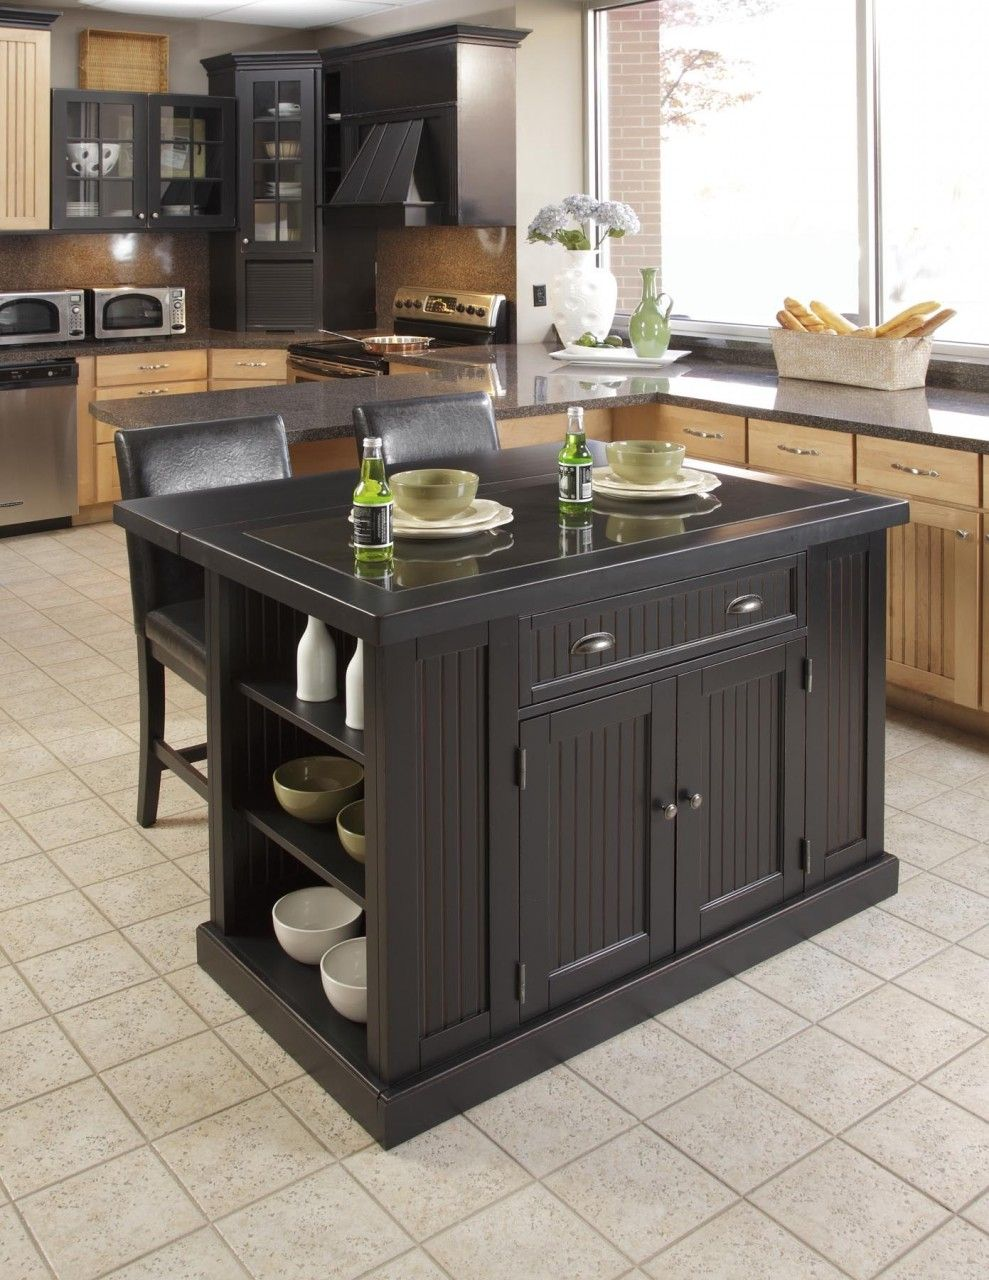 Kitchen islands designs  Nantucket Distressed Black Kitchen Island With Drop Leaf Breakfast